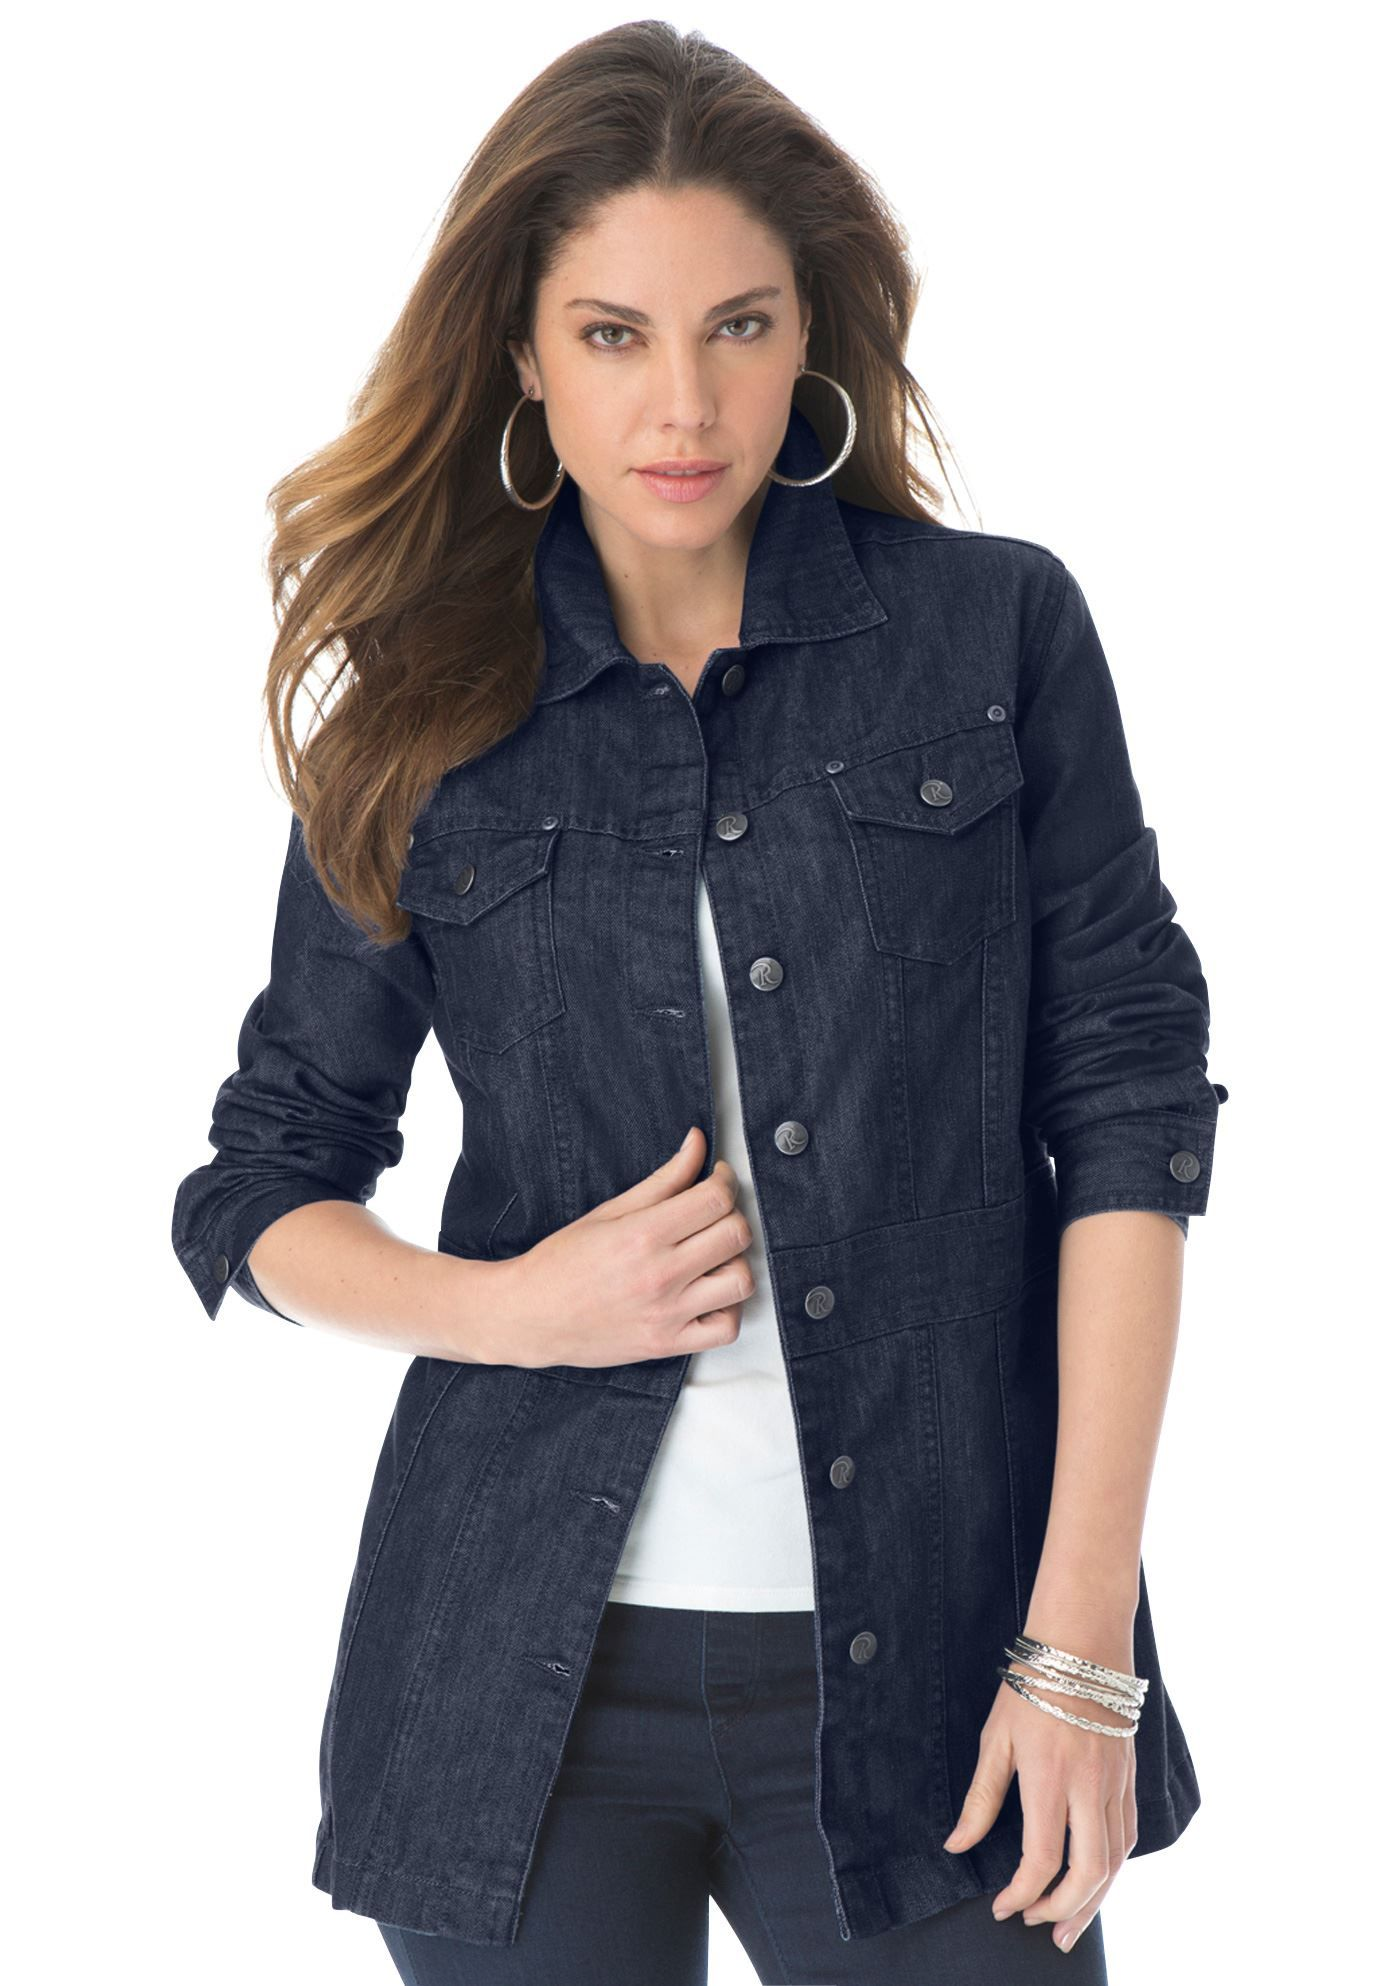 Plus Size Long Jean Jacket |  size fashion | Pinterest | Jackets ...